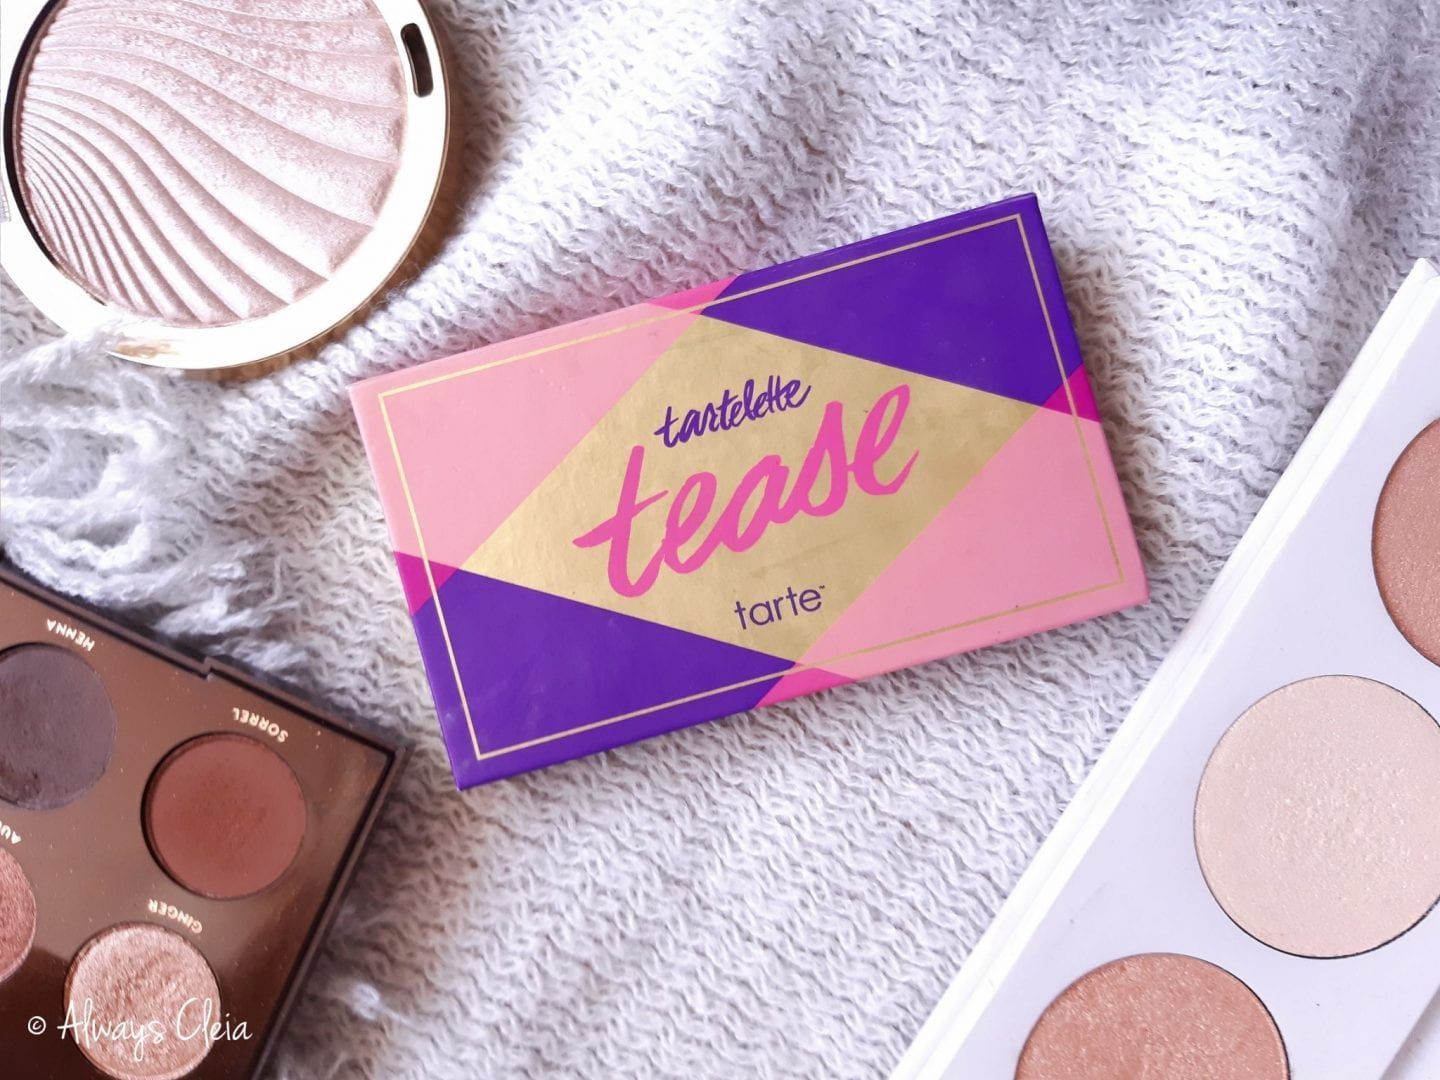 Tarte Tartelette Tease Eyeshadow Palette Swatches + Thoughts